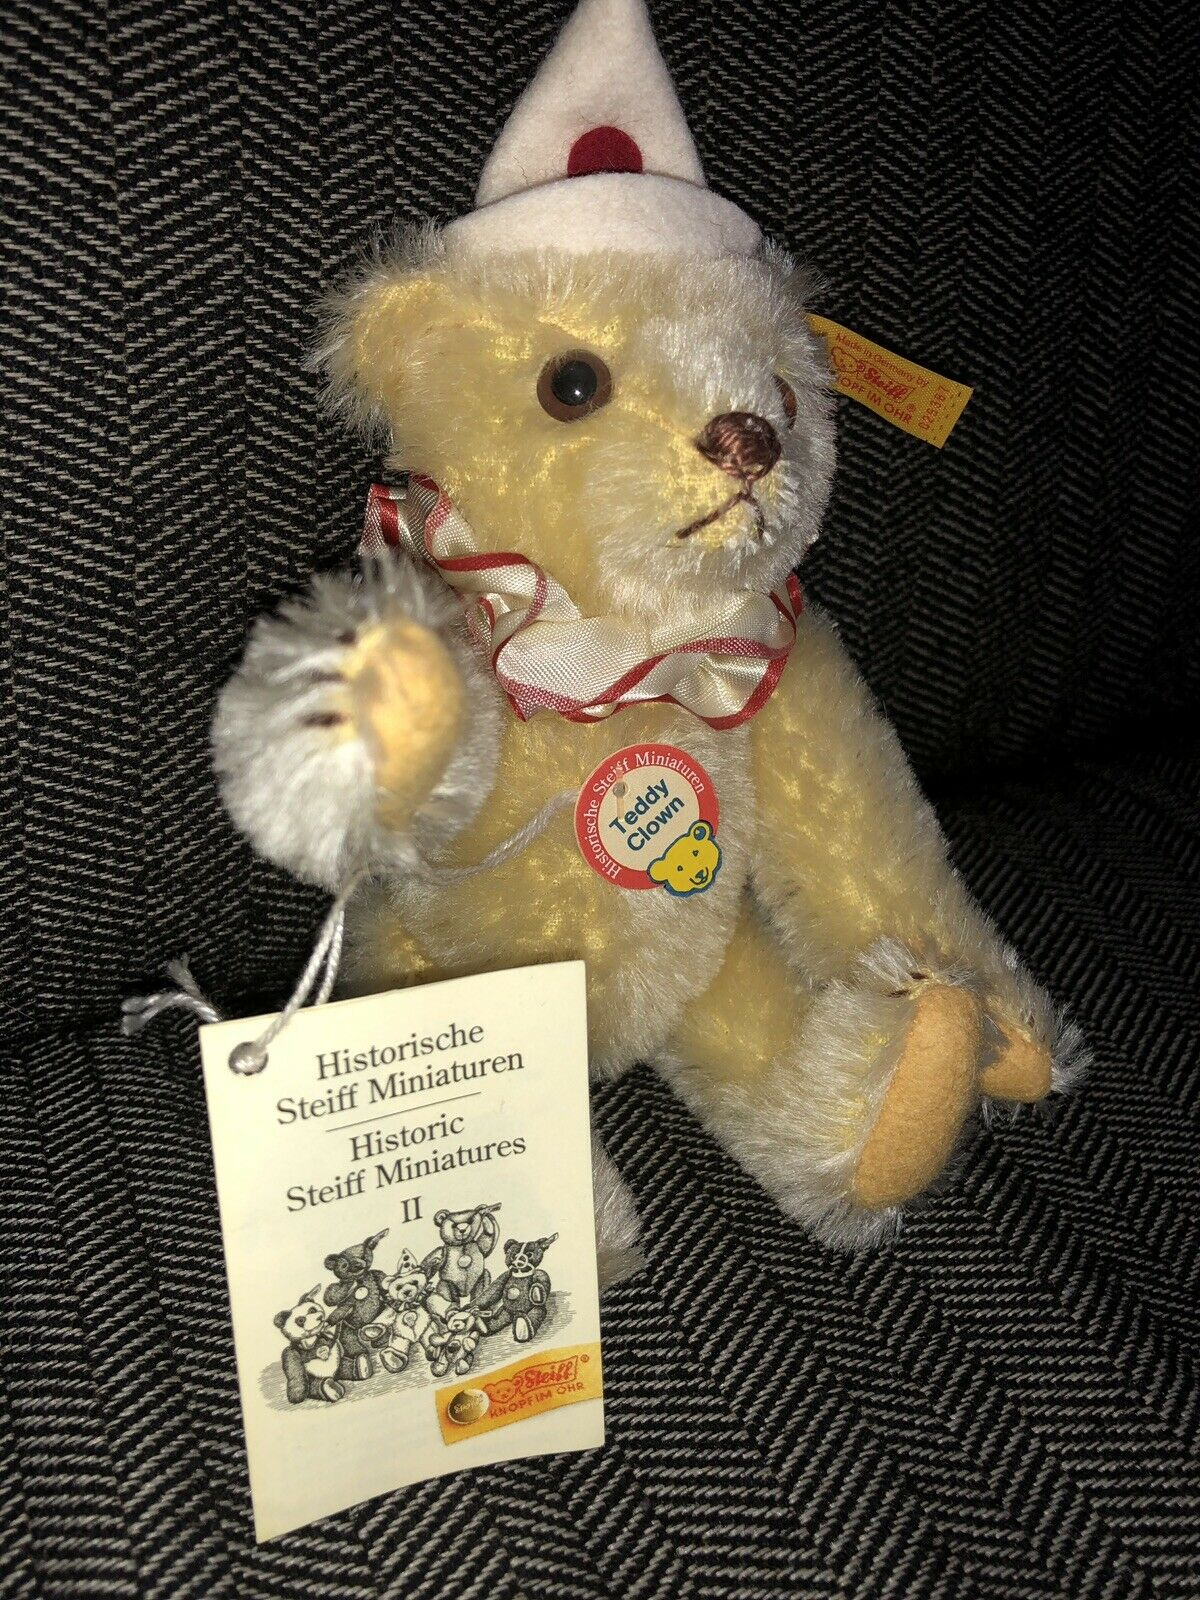 STEIFF CLOWN HISTORIC HISTORIC HISTORIC MINARURES II 2 MOHAIR TEDDY BEAR VINTAGE ANTIQUE TOY KIDS 7312ee